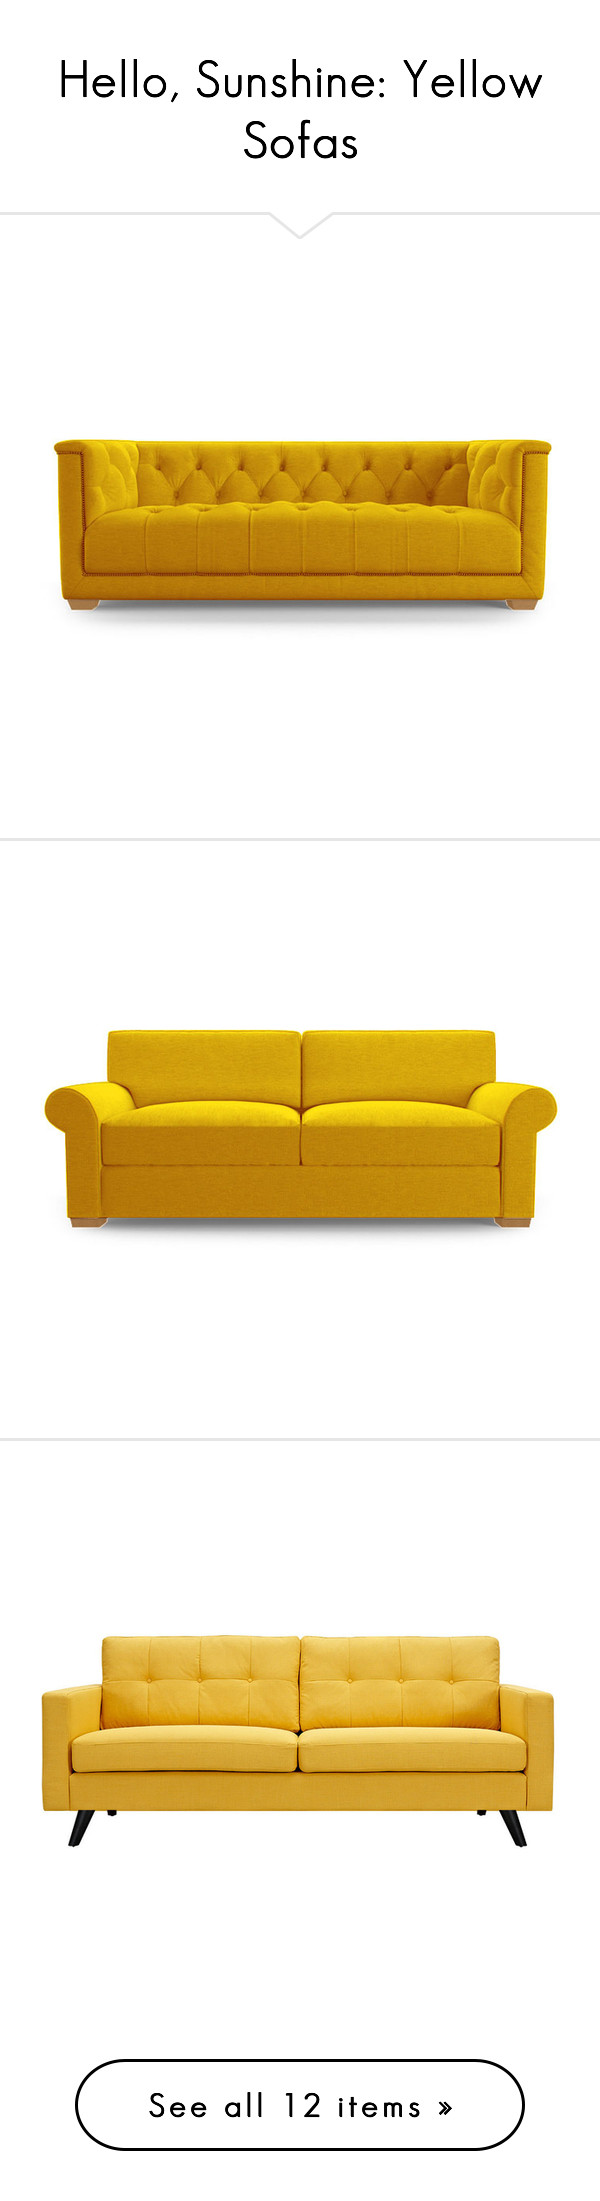 Sleeper Sofas  Hello Sunshine Yellow Sofas by polyvore editorial liked on Polyvore